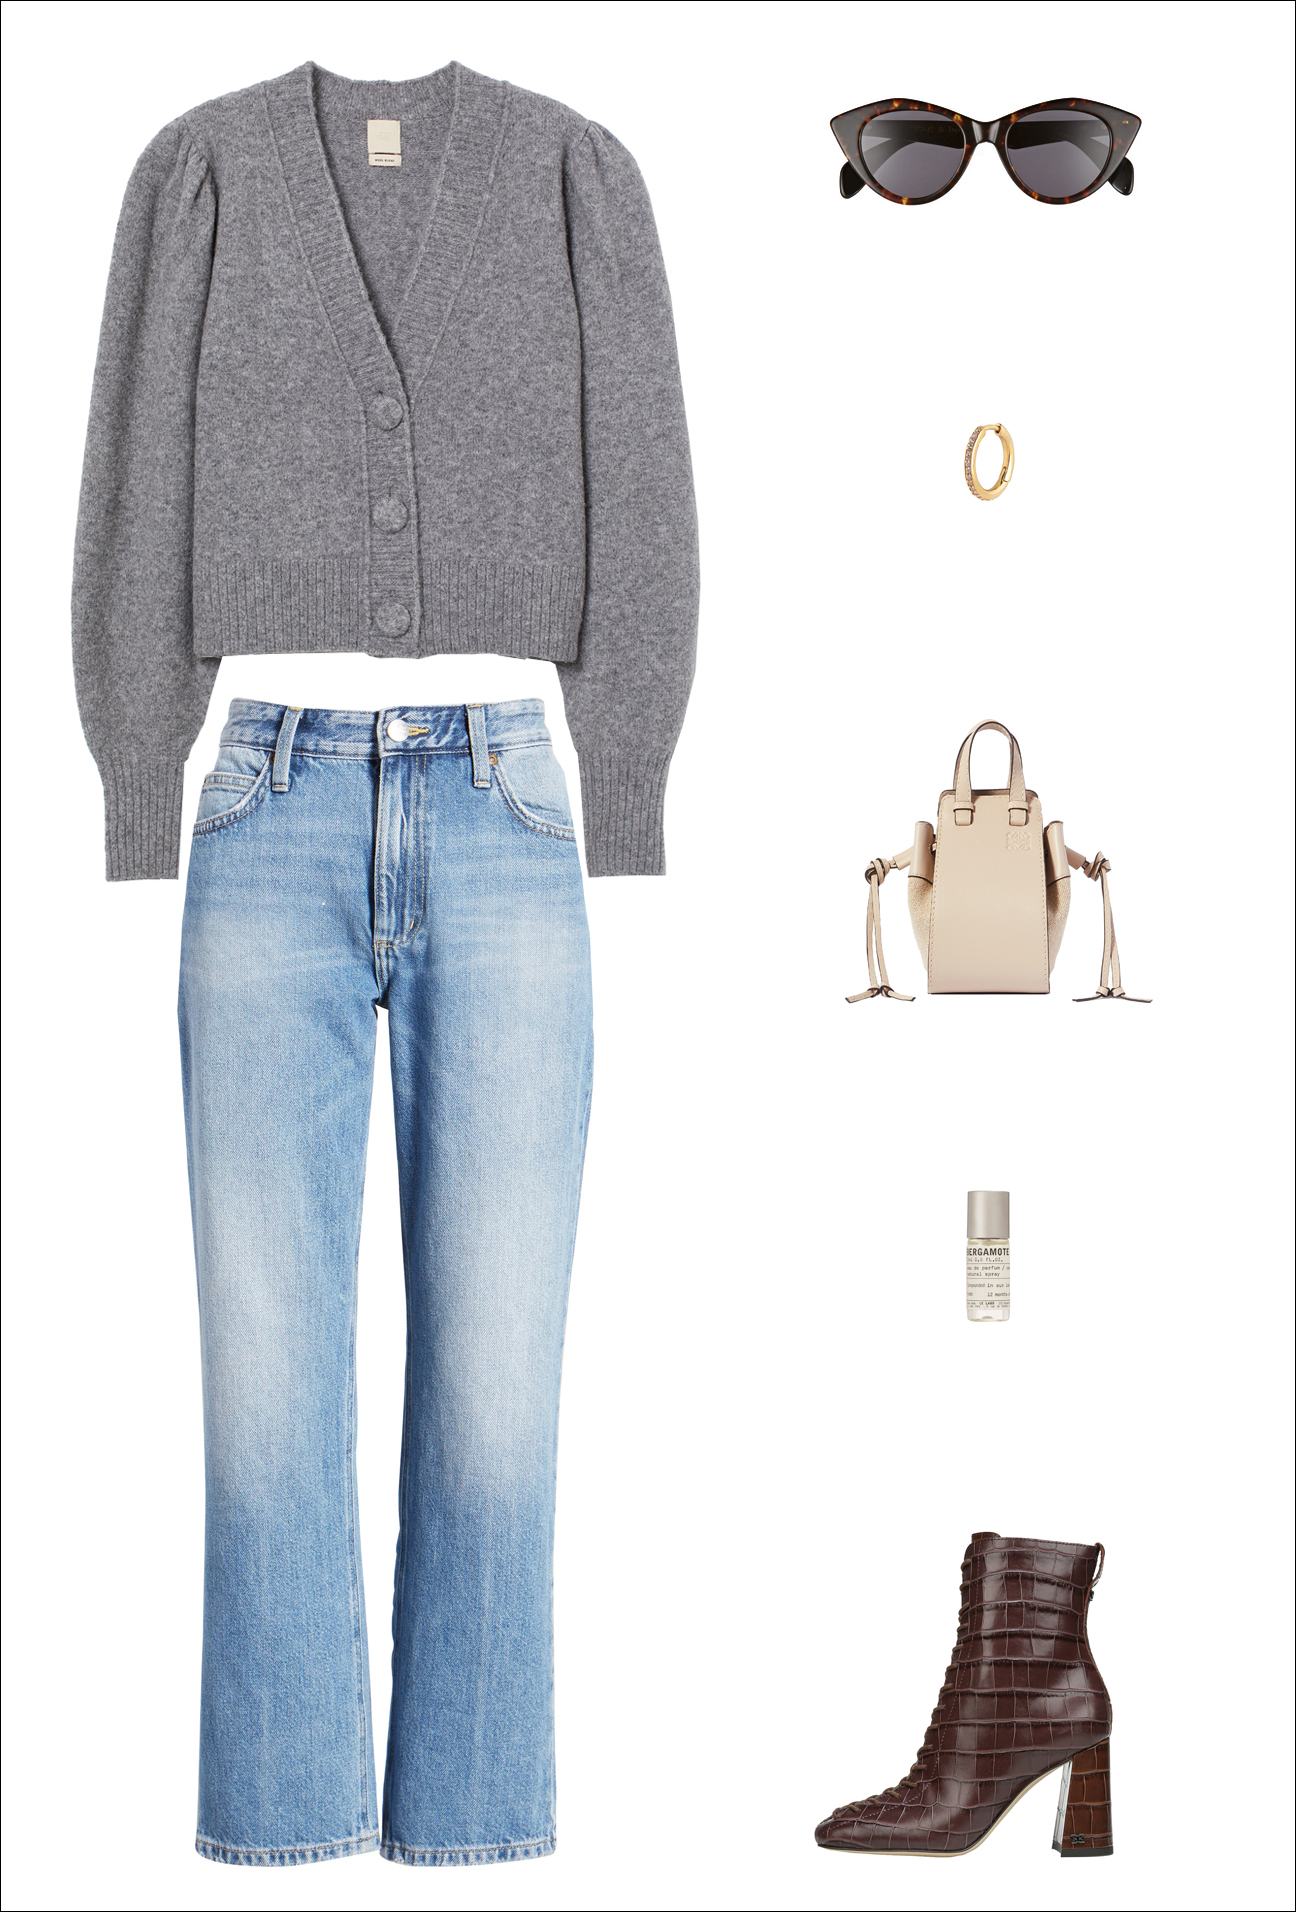 Cool Denim Fall Outfit — Gray Puff-Sleeve Cardigan, Cat-Eye Sunglasses, Huggie Earring, Loewe Hammock Bag, and Burgundy Croc Ankle Boots